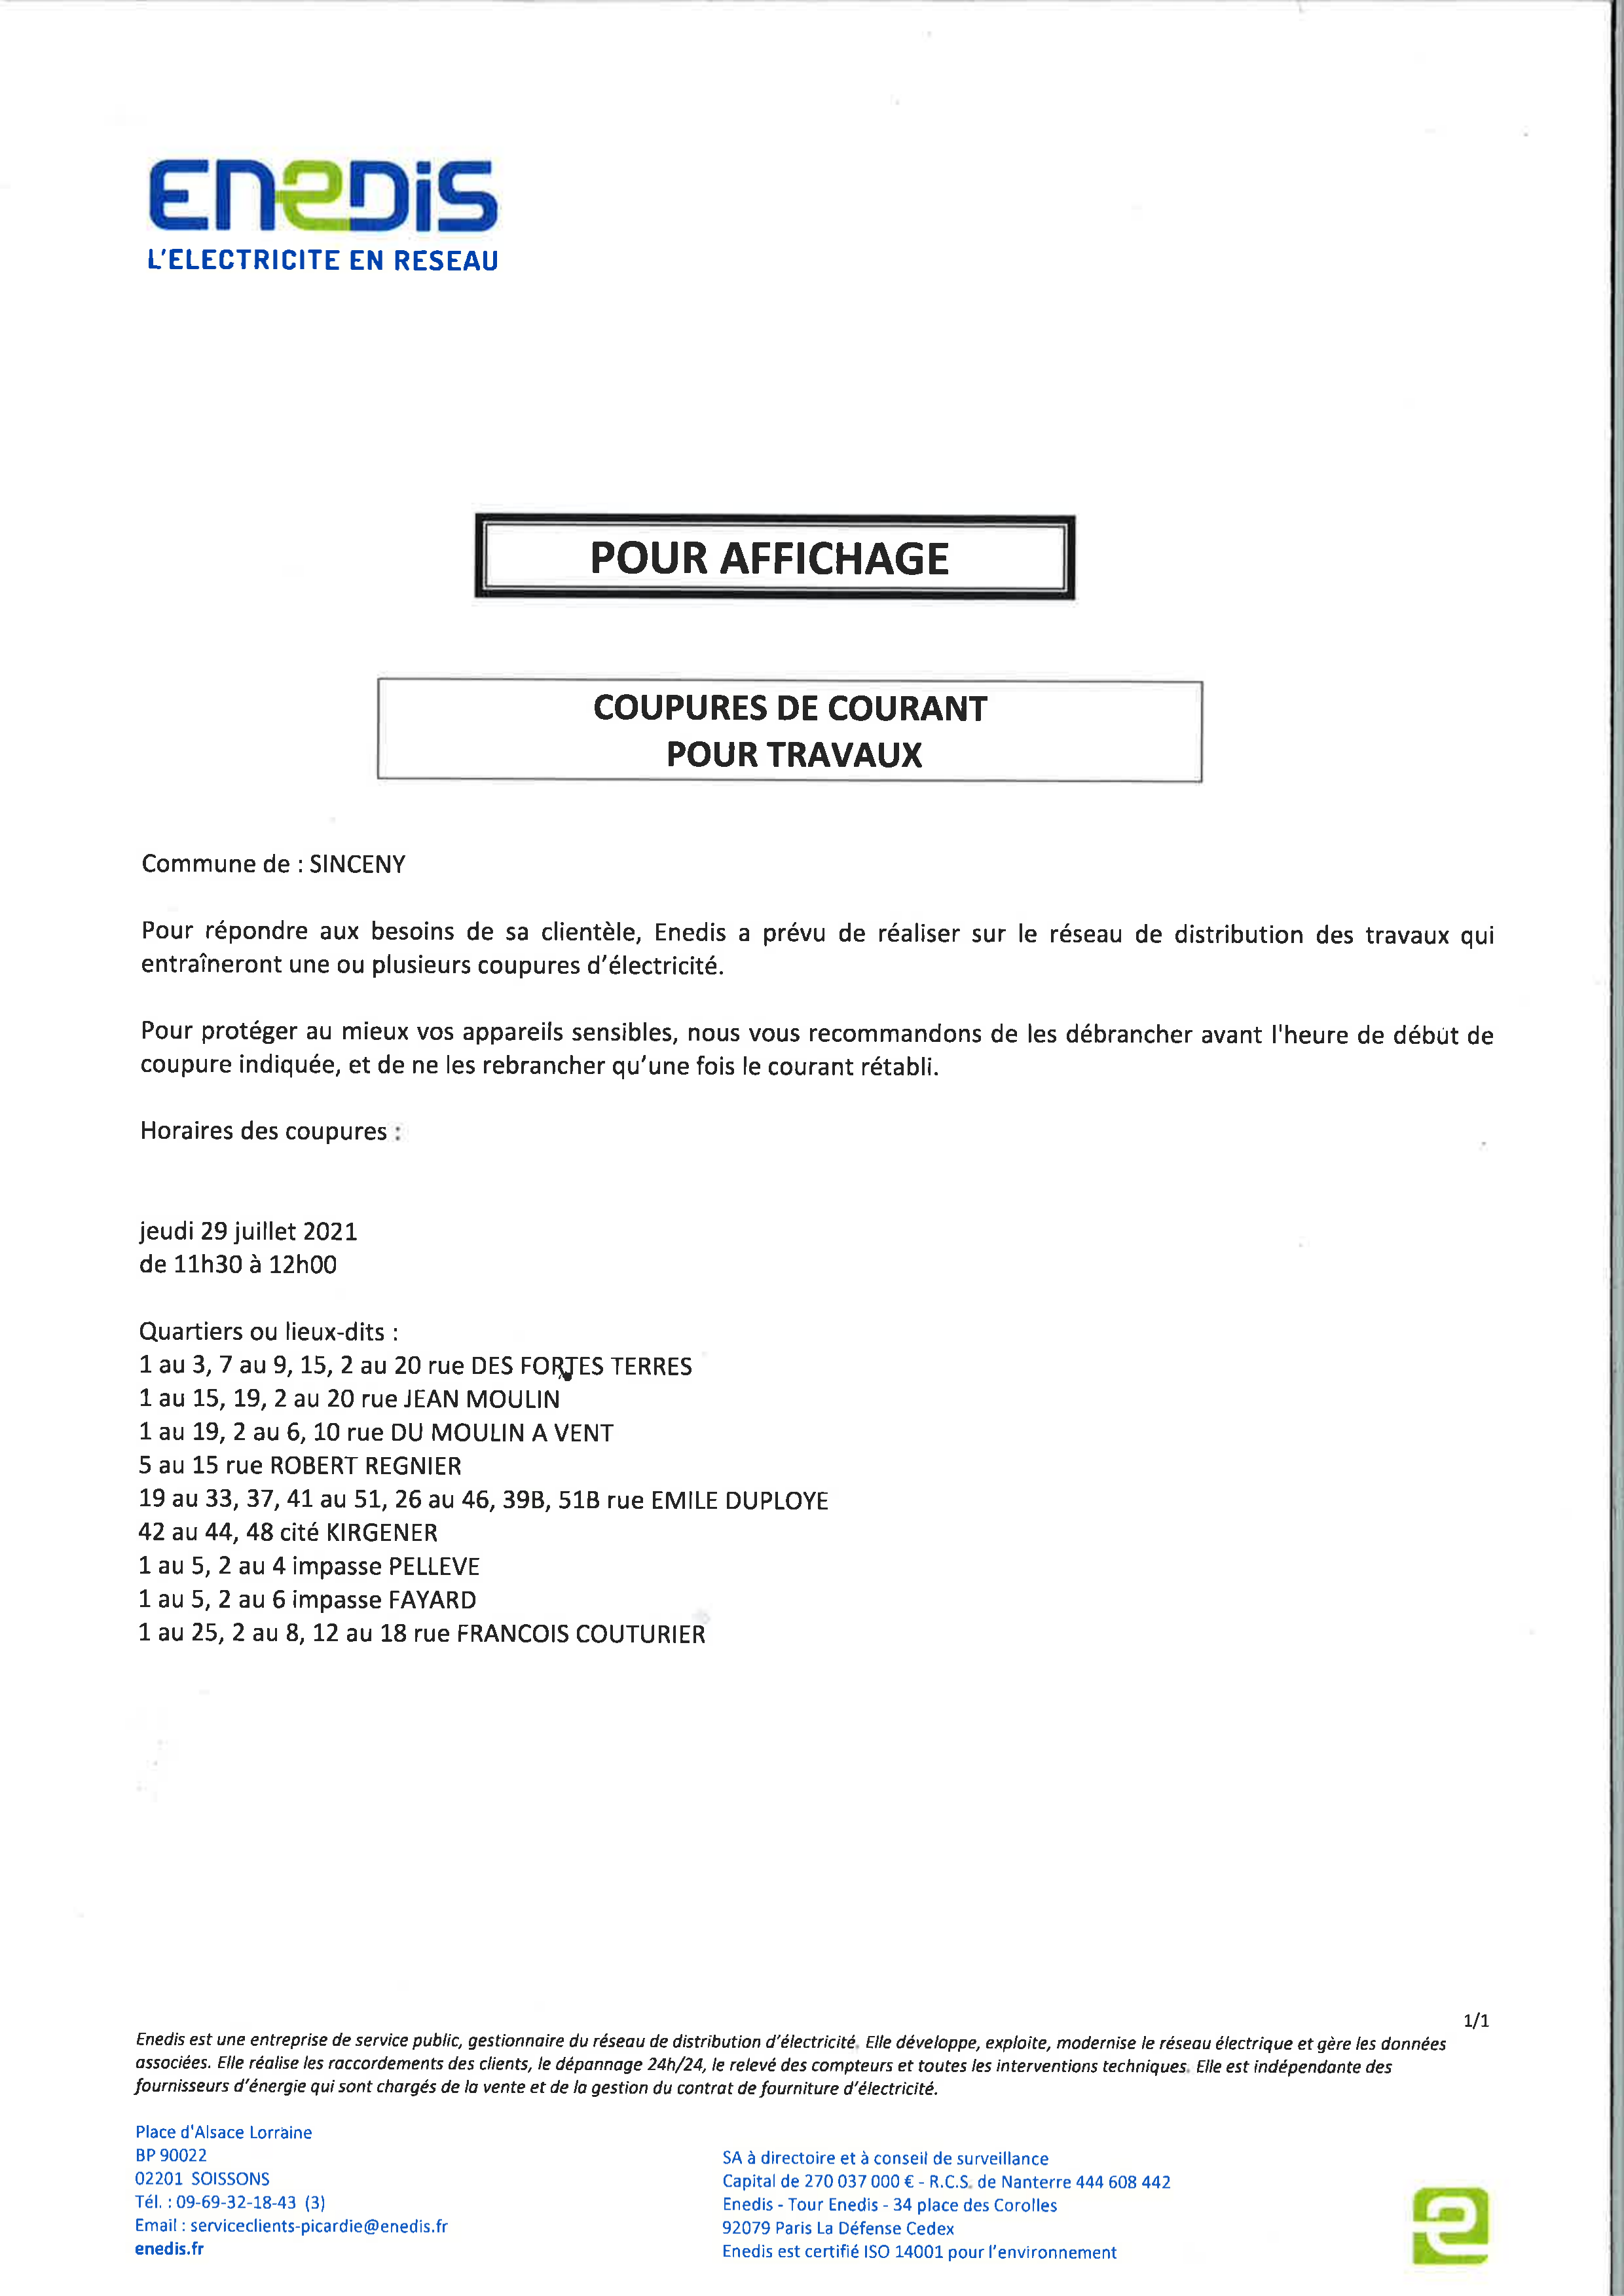 You are currently viewing Attention : Coupure de courant pour travaux